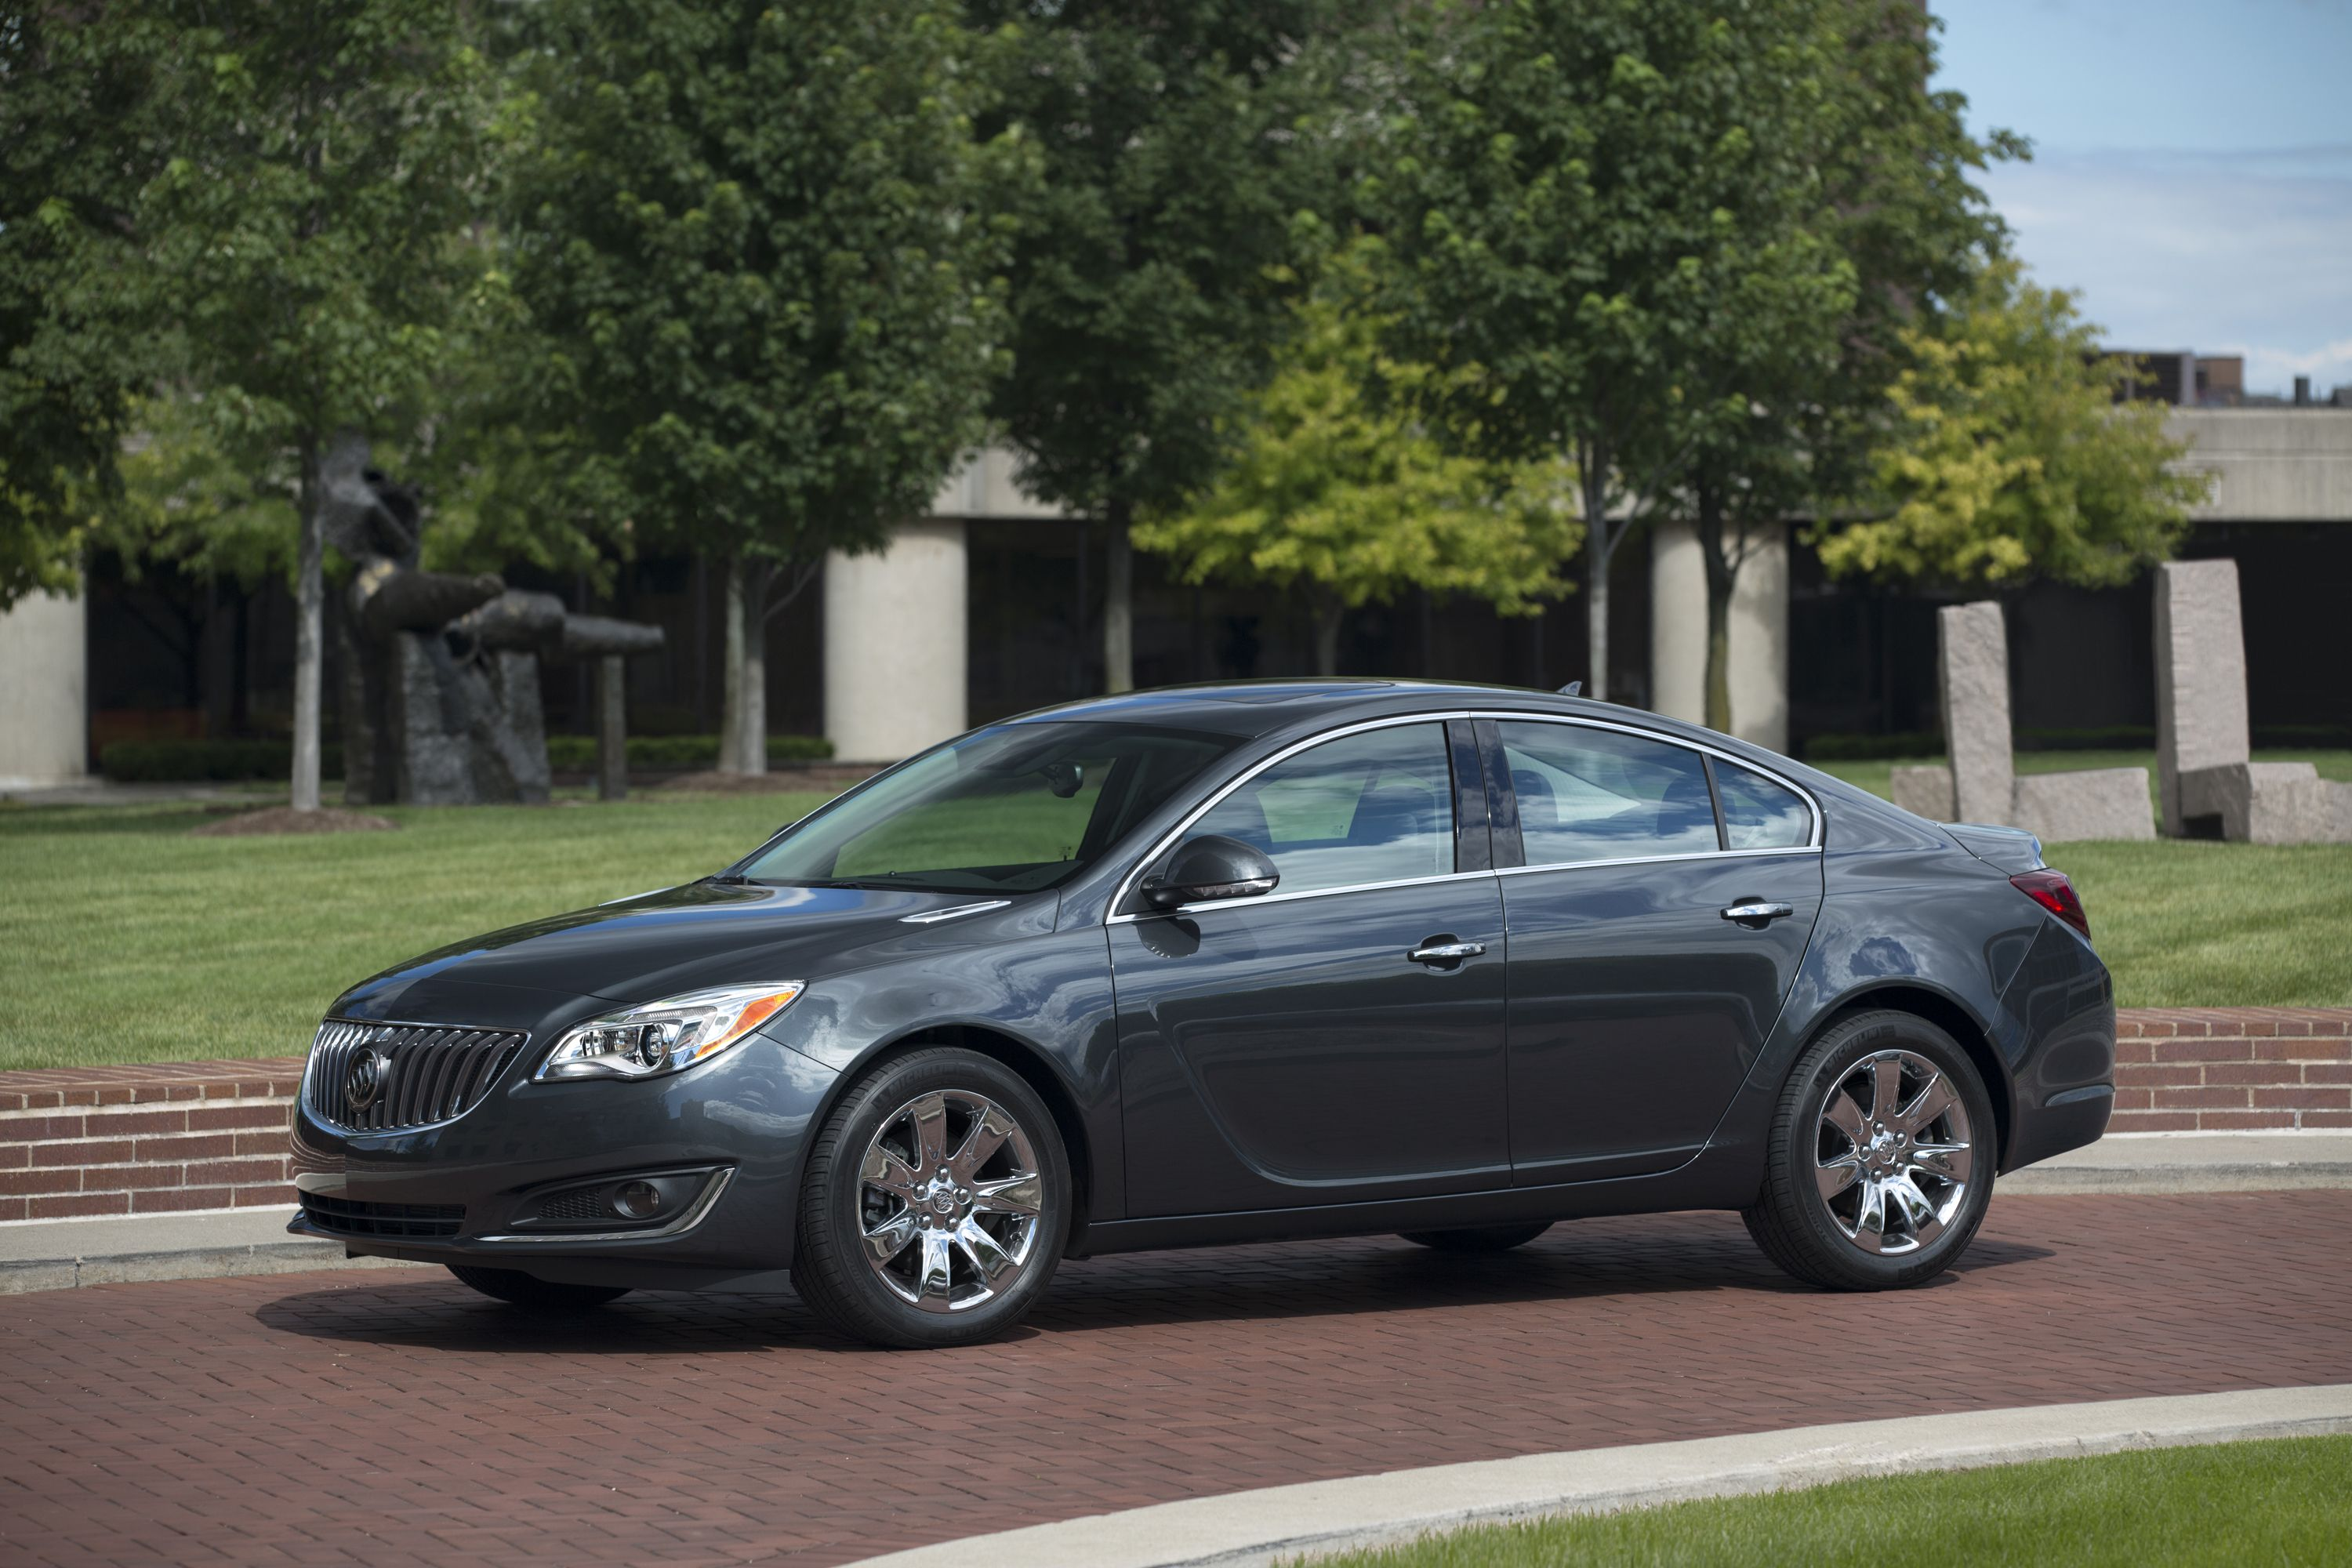 2014 Buick Regal In Ashen Gray Exterior Color And Equipped With 18